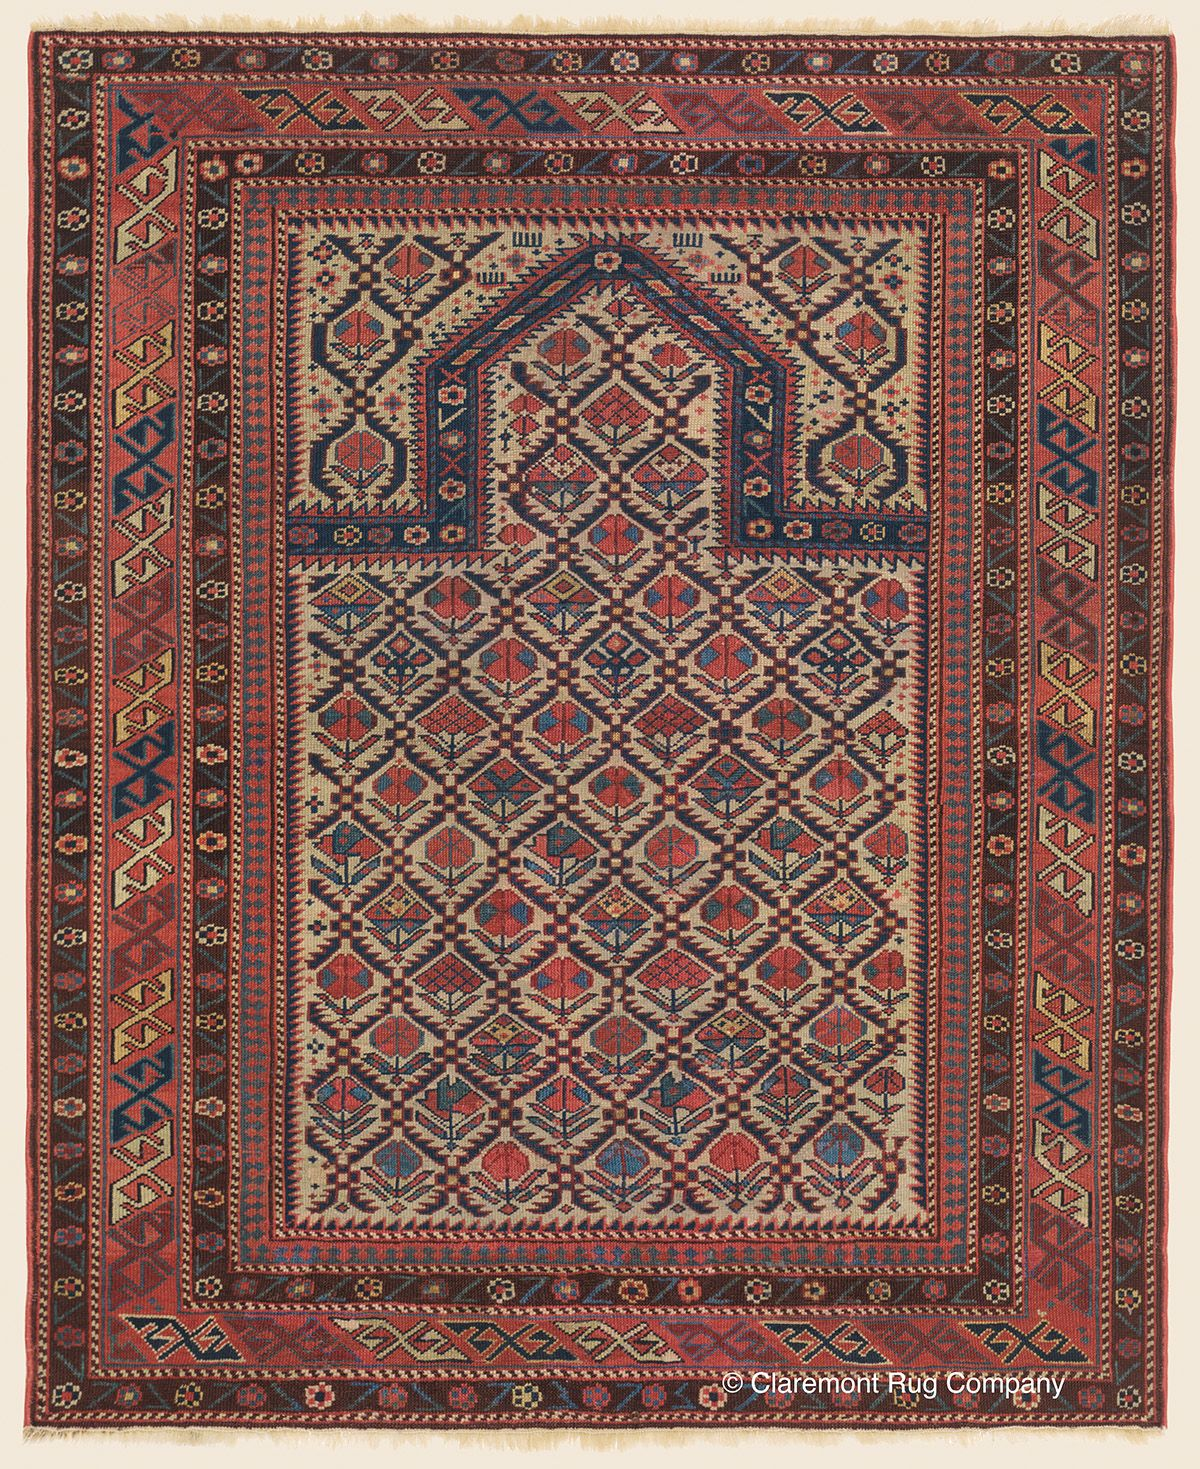 Exquisite 19th Early 20th Century Rugs From Tribal To City Oversize Carpets